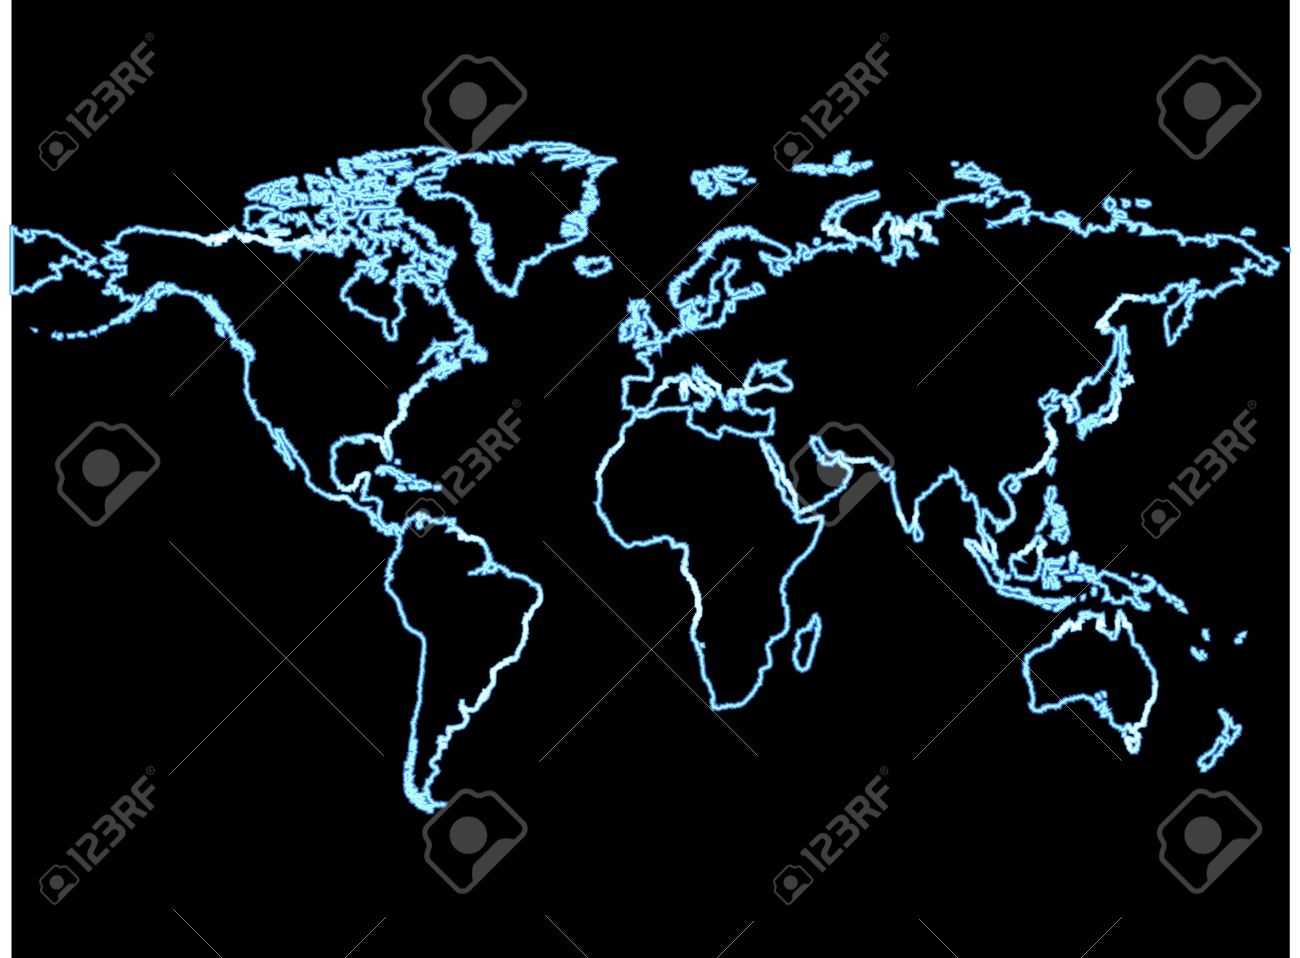 World map with neon effect black background in bird view world map with neon effect black background in bird view perspective stock photo 14152219 gumiabroncs Images